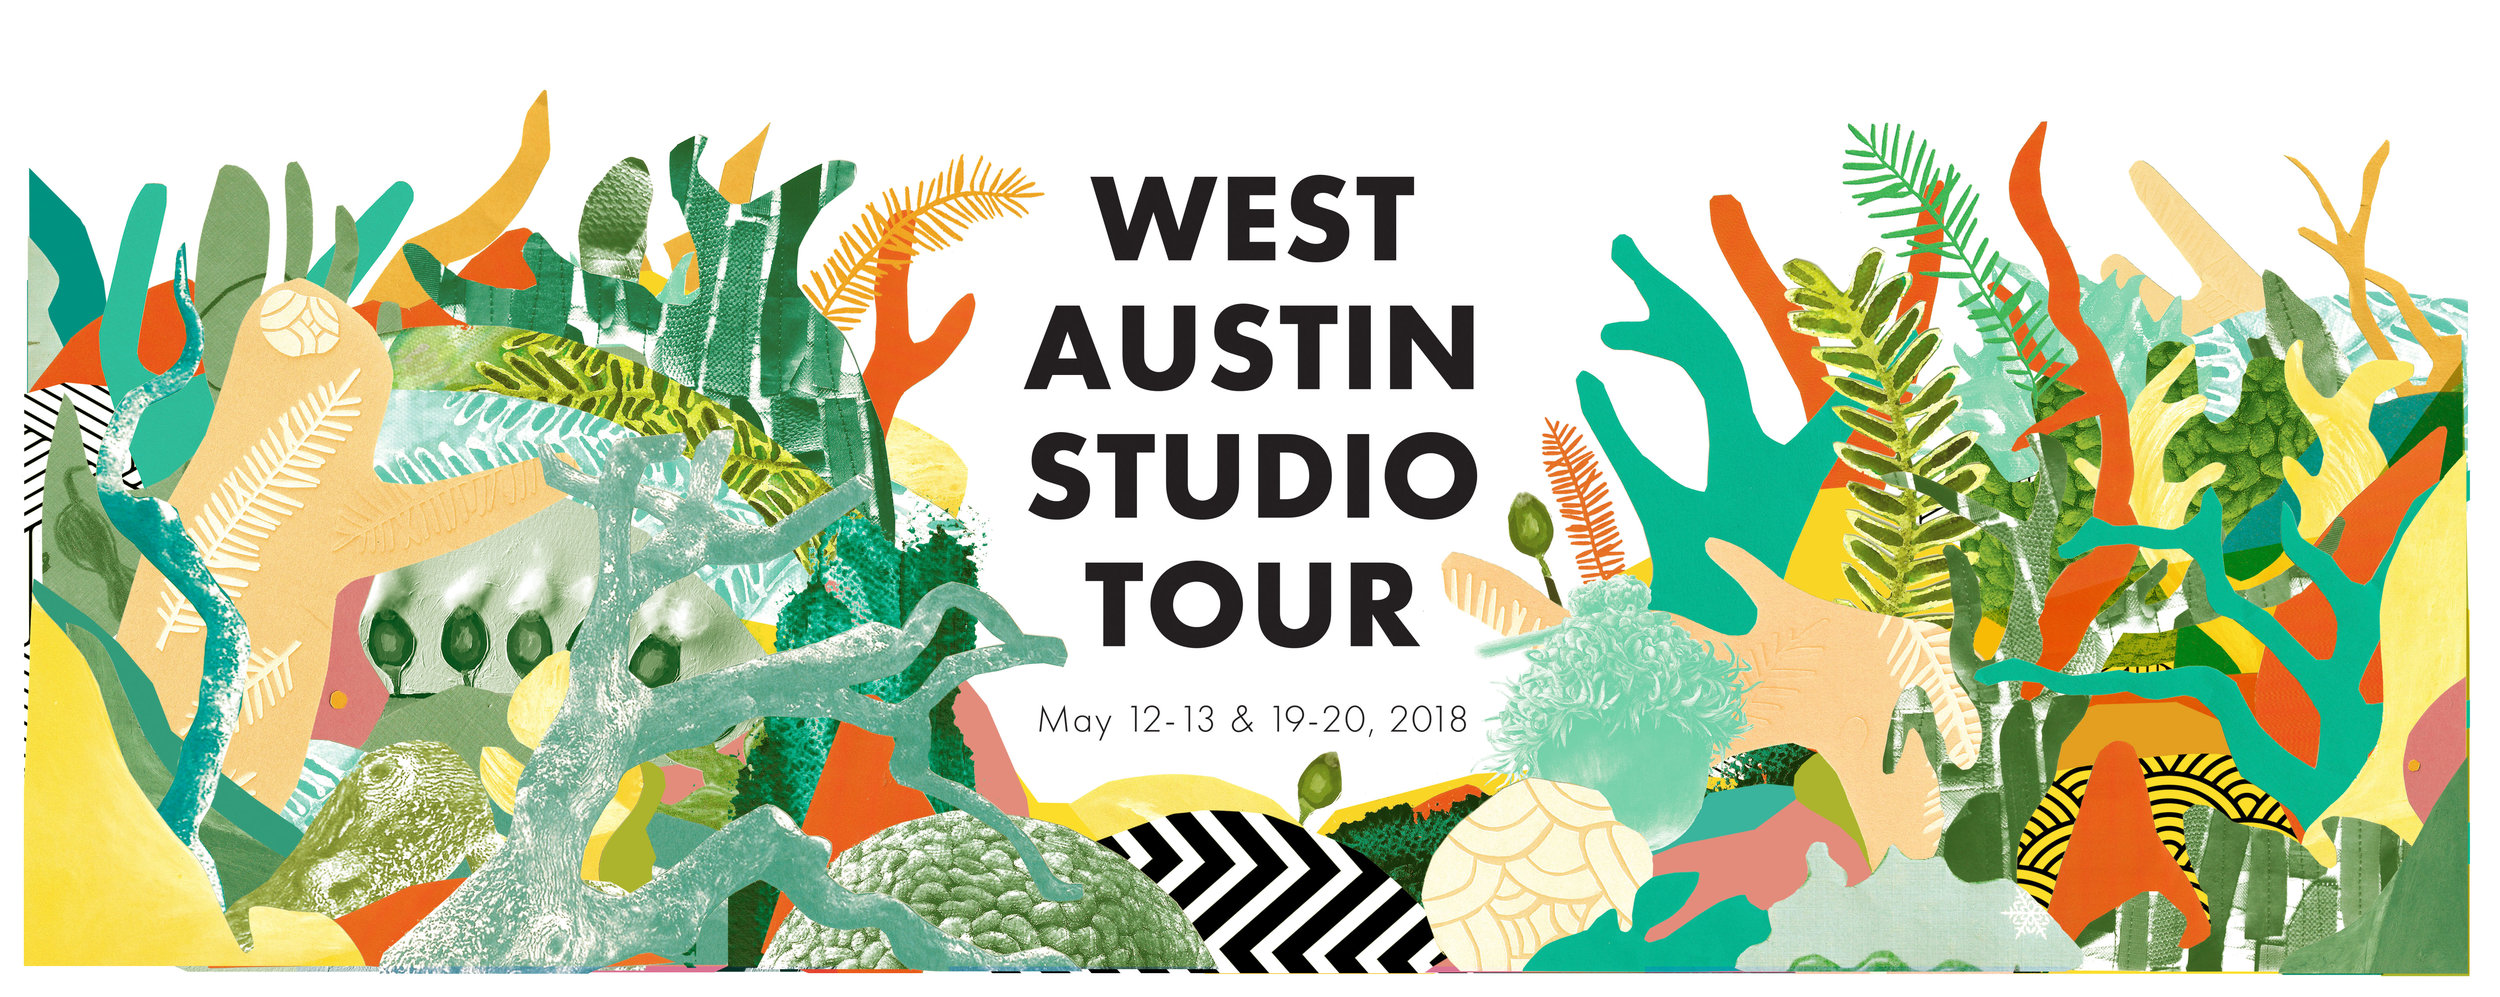 "During the West Austin Studio Tour I will be showcased along with 6 other wonderful Austin artists at Art For The People gallery. The show is titled  ""Magnificence of Seven.""   Please join us at the Opening Reception:  Saturday,  May 12th, 2:00-6:00pm .  Exhibition runs through  Saturday, June 16th."